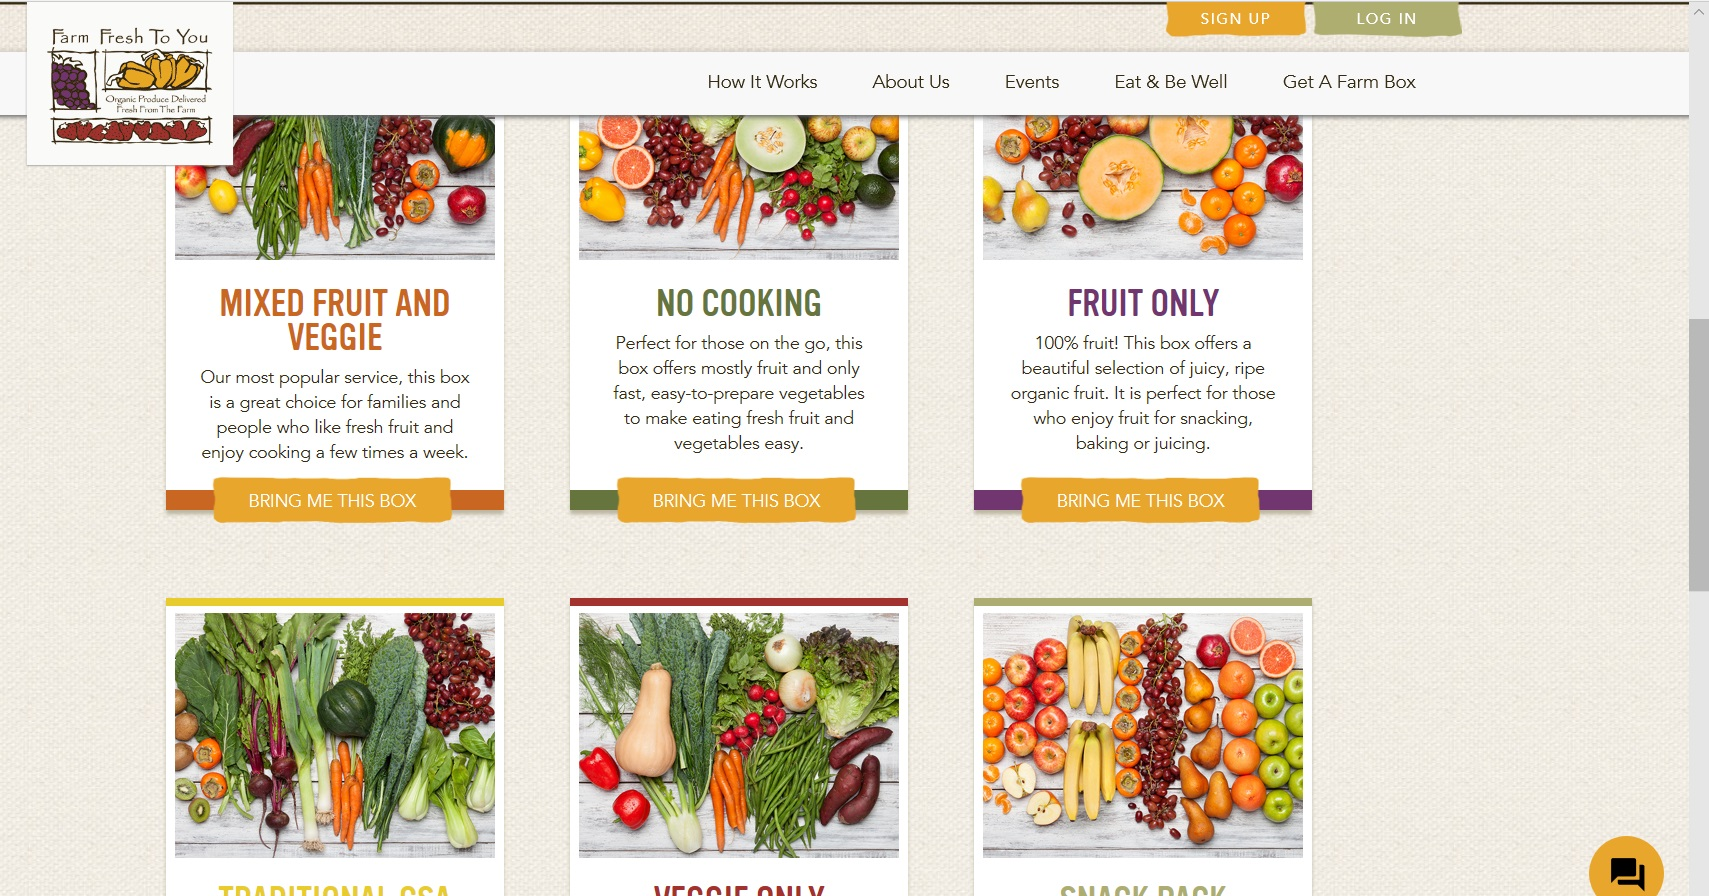 Catalogue of Farm Fresh To You boxes.